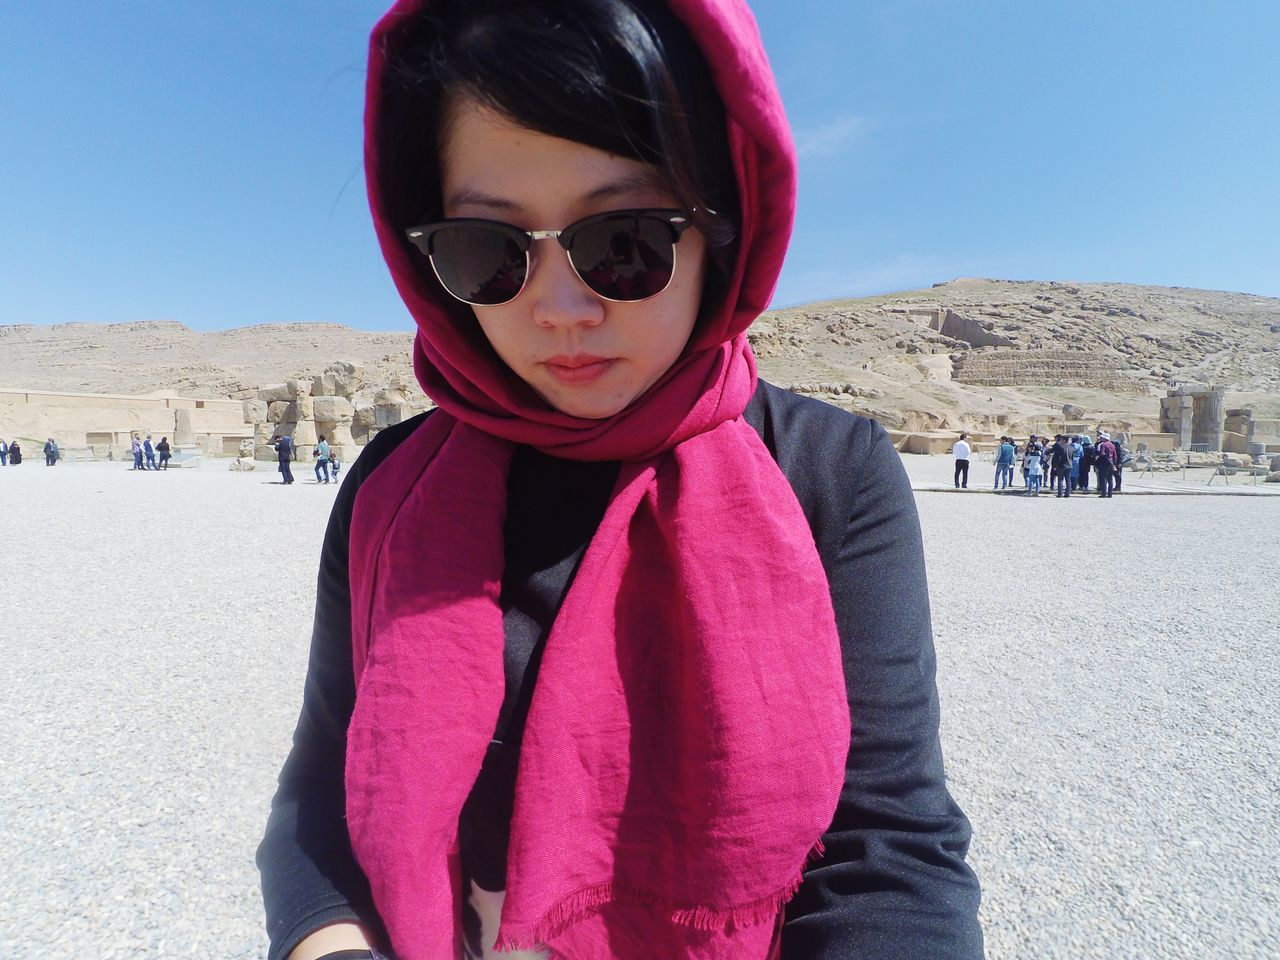 Persepolis in Shiraz, Iran, the world heritage site Sunglasses One Person Portrait People Sunlight Day Outdoors Real People Architecture Sun Irantravel Persepolis Shiraz, Iran Iranpics Worldheritage Worldheritagesite Worldheritagesites Hotsunnyday